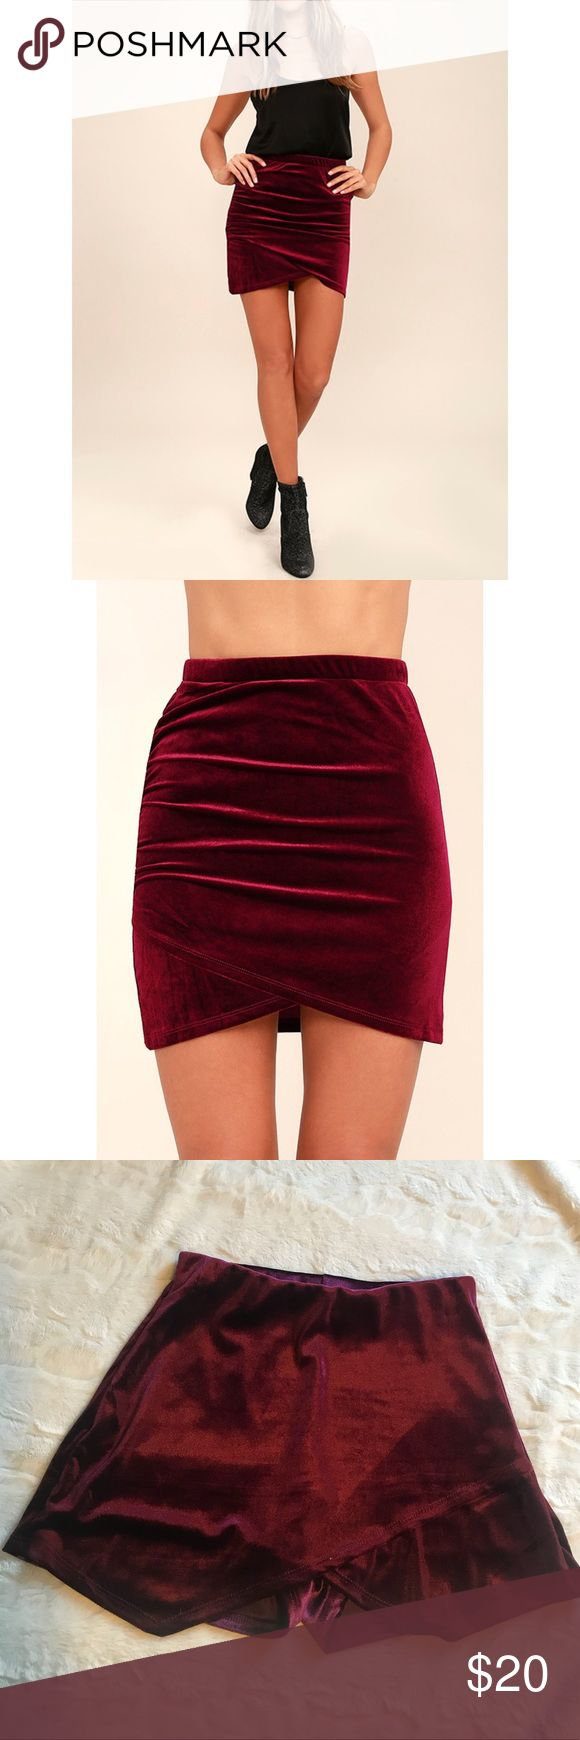 Red velvet skorts Celebrate making it through the work week by hitting happy hour in the Celebrate the Feeling Burgundy Velvet Bodycon Skort! Soft and stretchy velvet shapes this sexy mini skirt with ruched detail along the right side that wraps into a rounded tulip hem.   Elasticized waist.  Unlined.  92% Polyester  8%Spandex.   Hand Wash Cold. Shorts Skorts